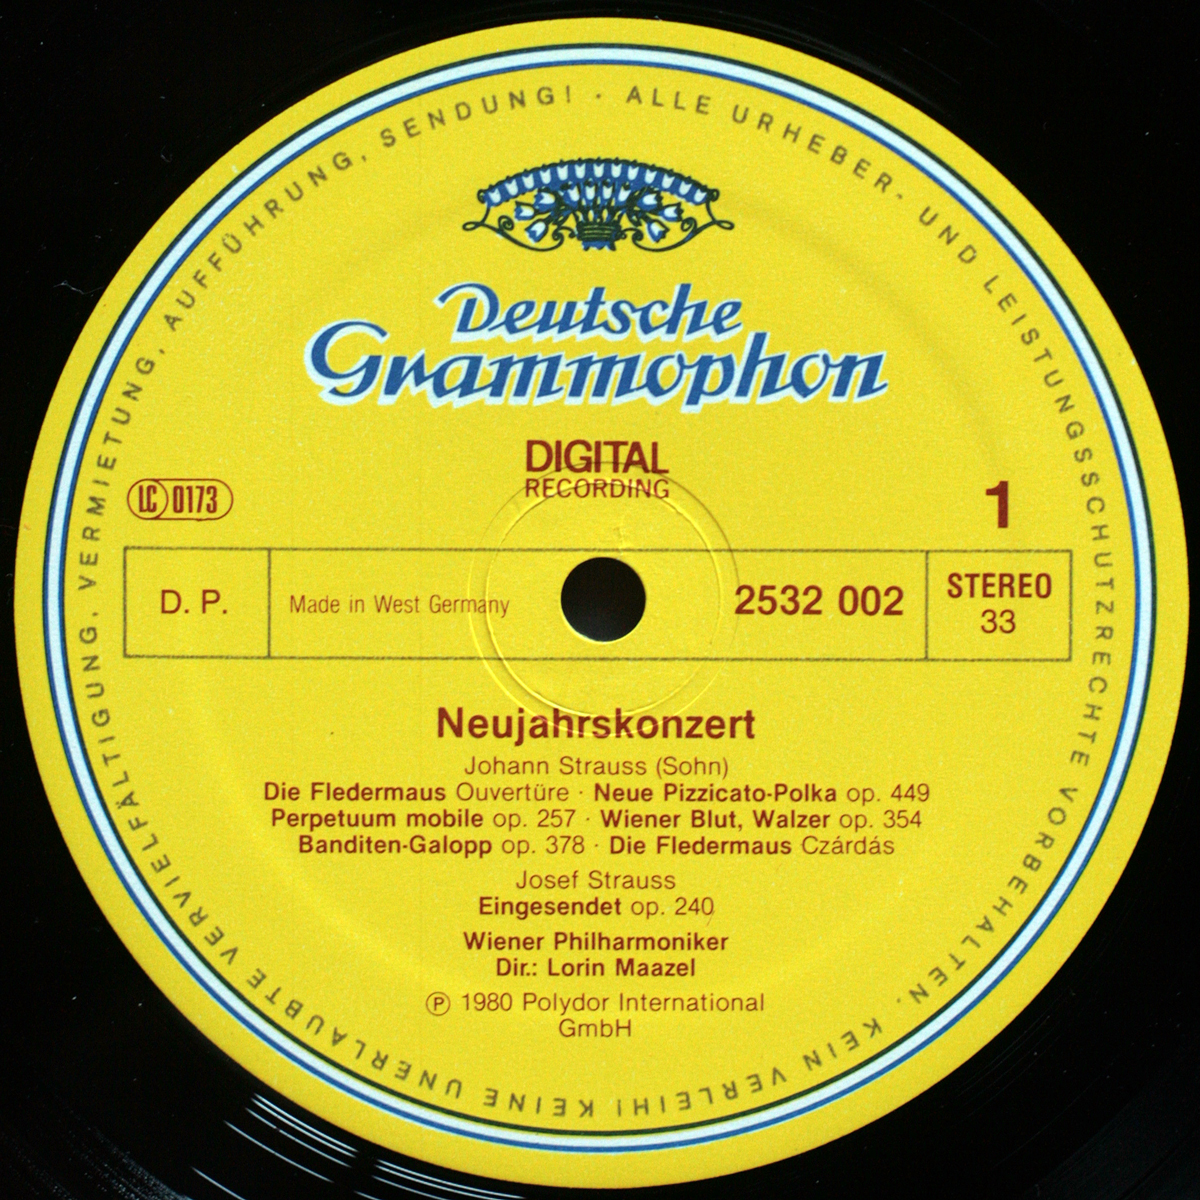 DGG | Deutsche Grammophon | Records | LP | Vinyl | Label Guide | Références